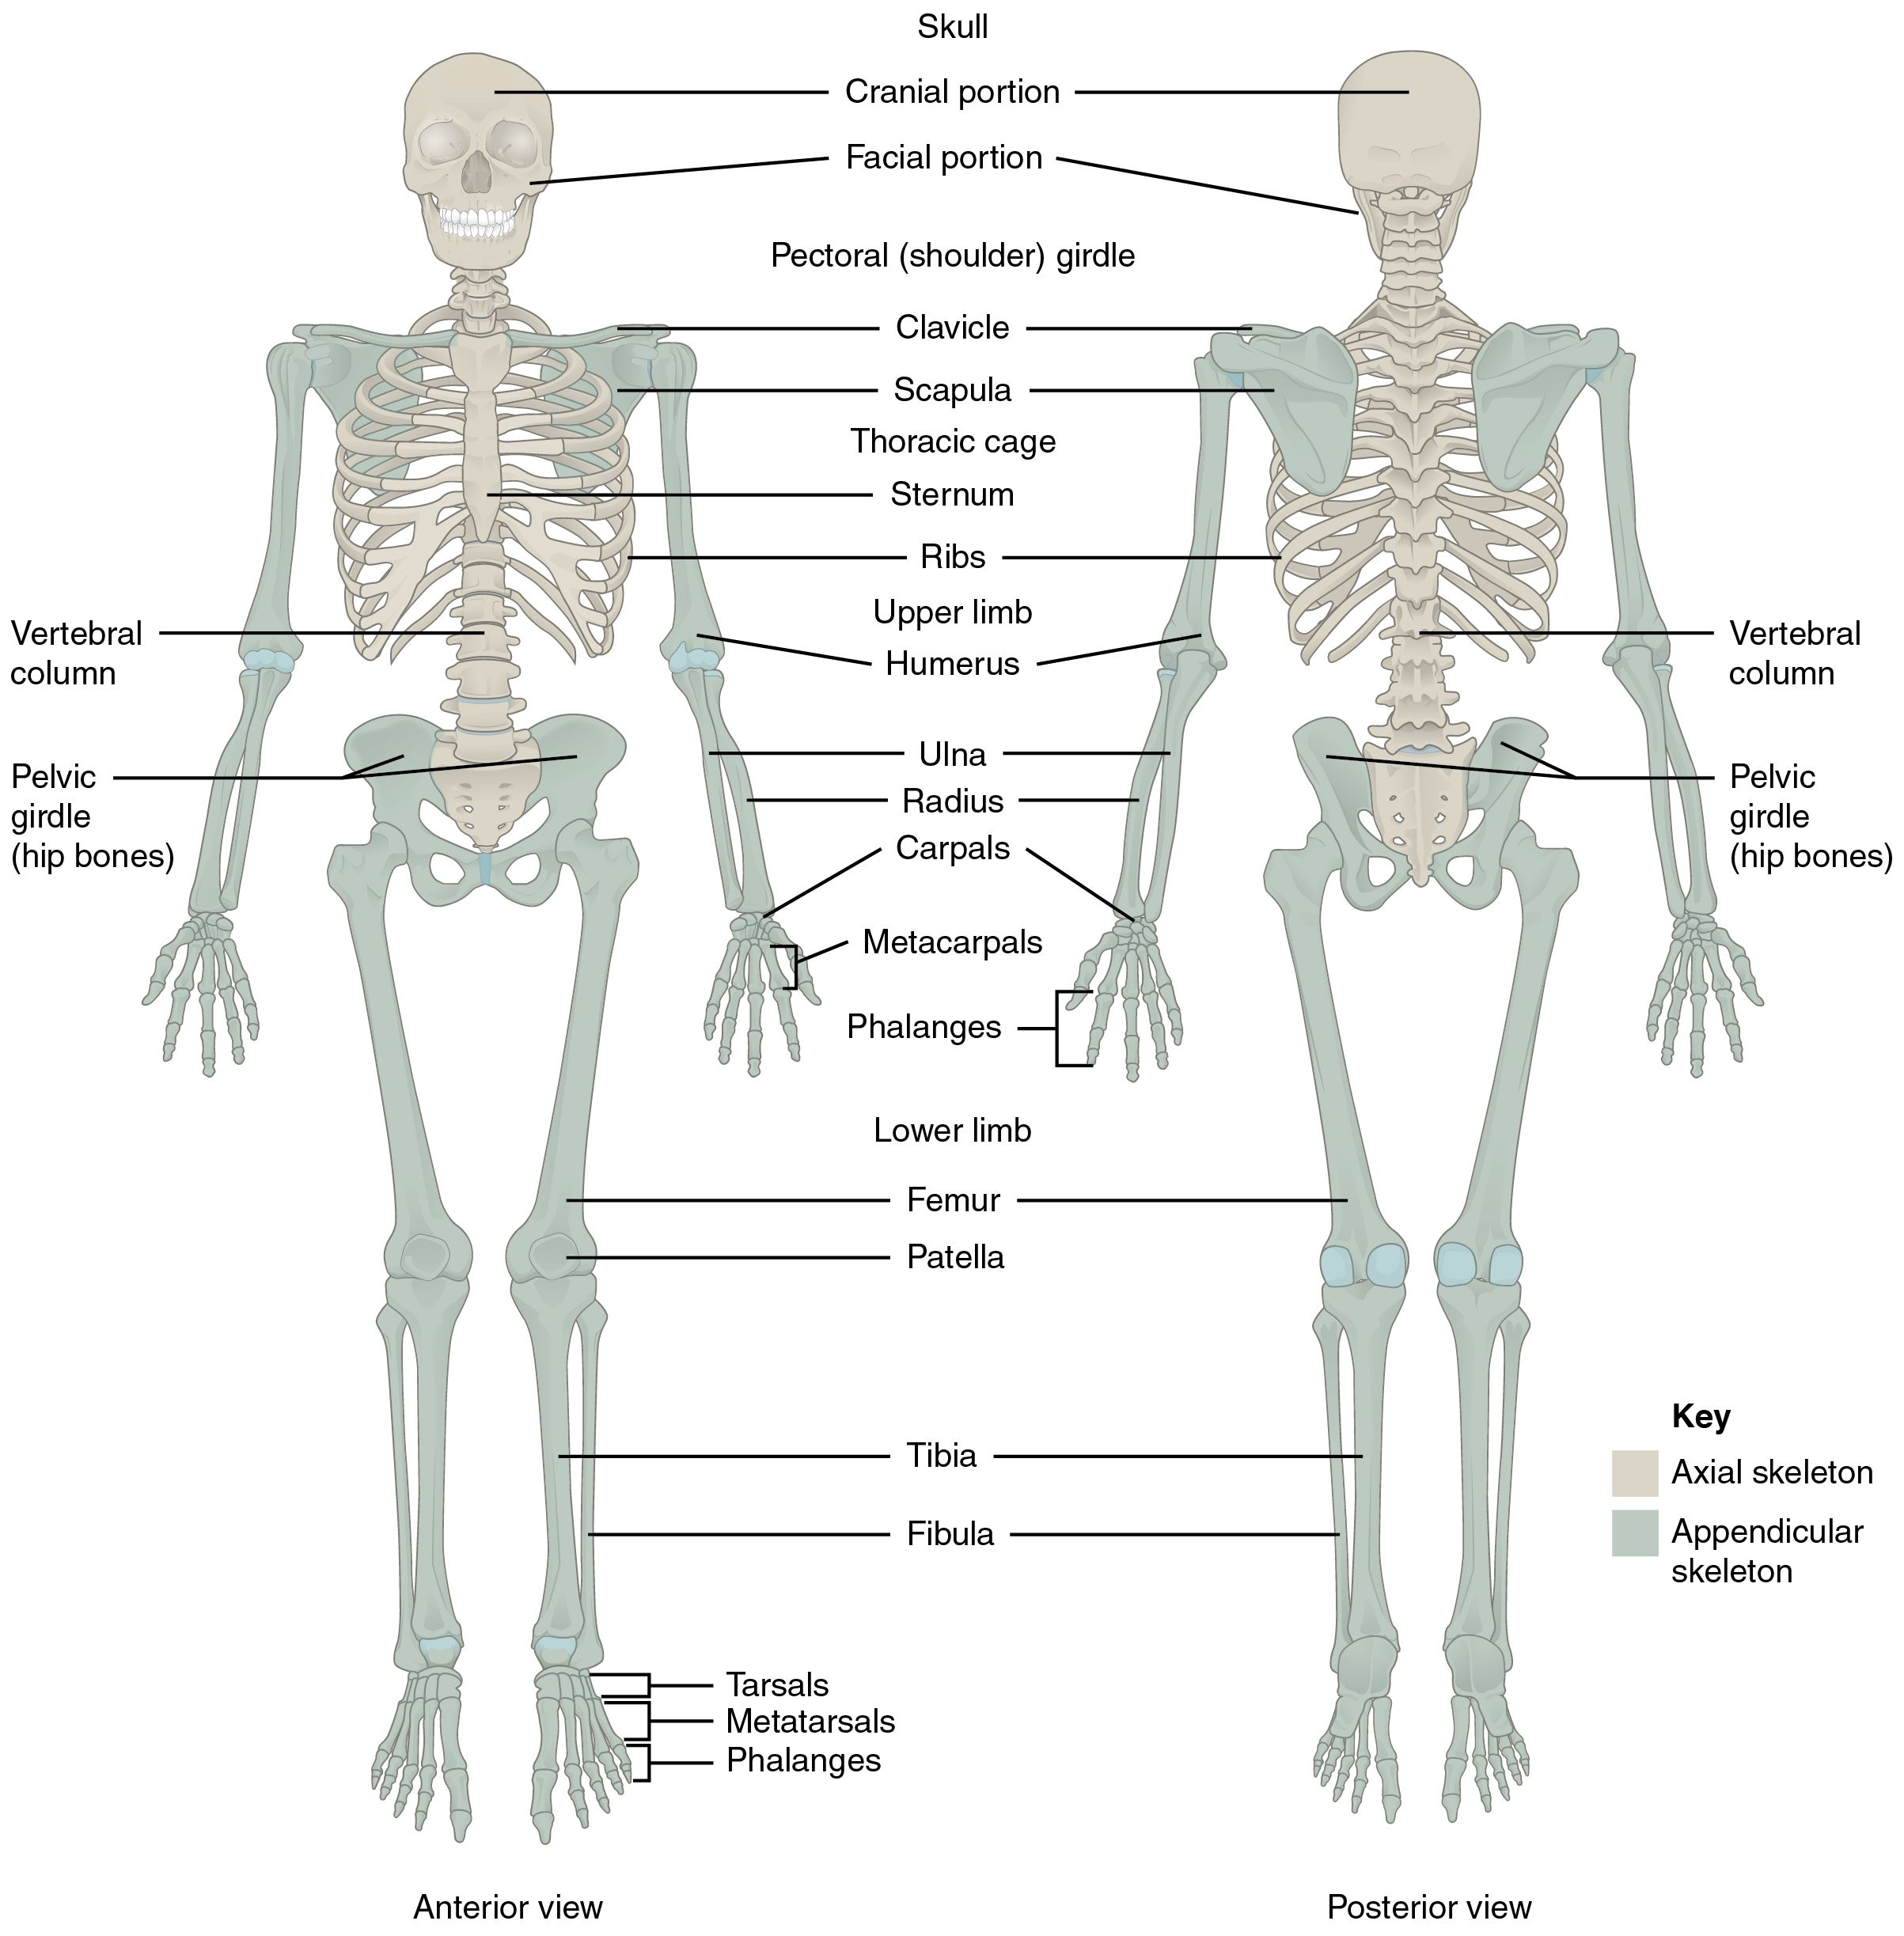 small resolution of back bones structure bone structure lower back humananatomybody diagram of lower back spine back bones structure